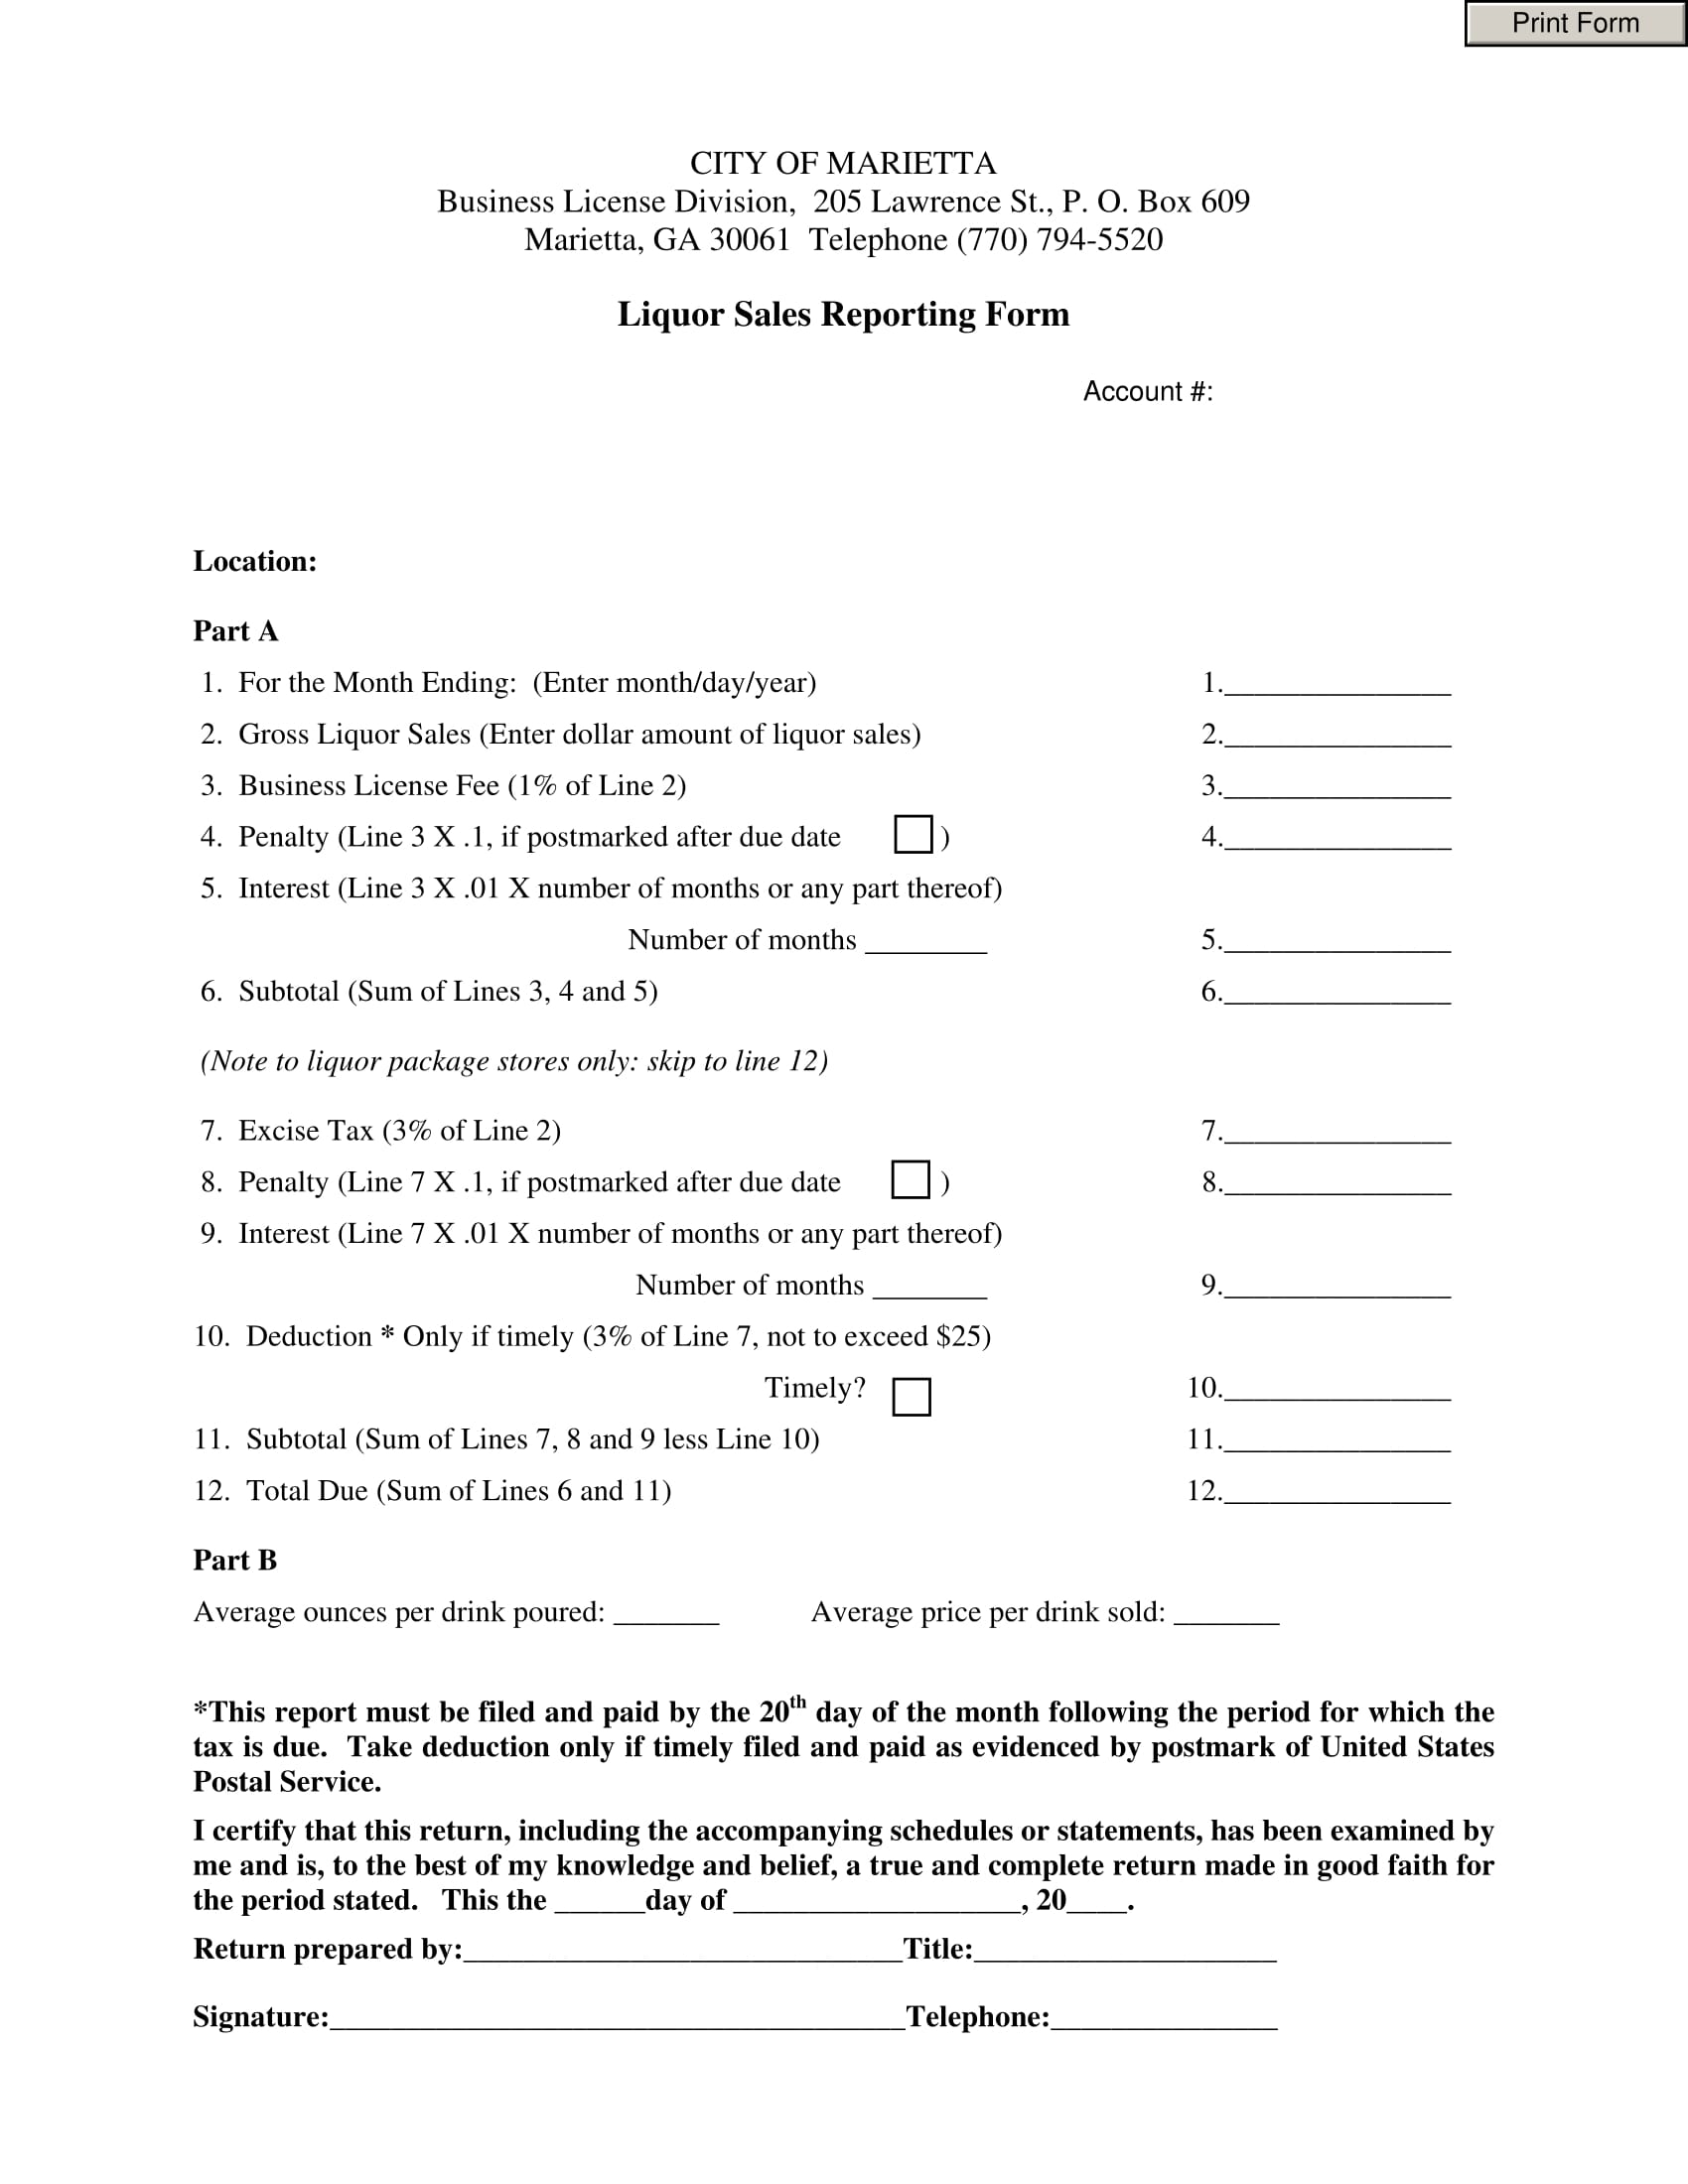 fillable liquor sales reporting form 1